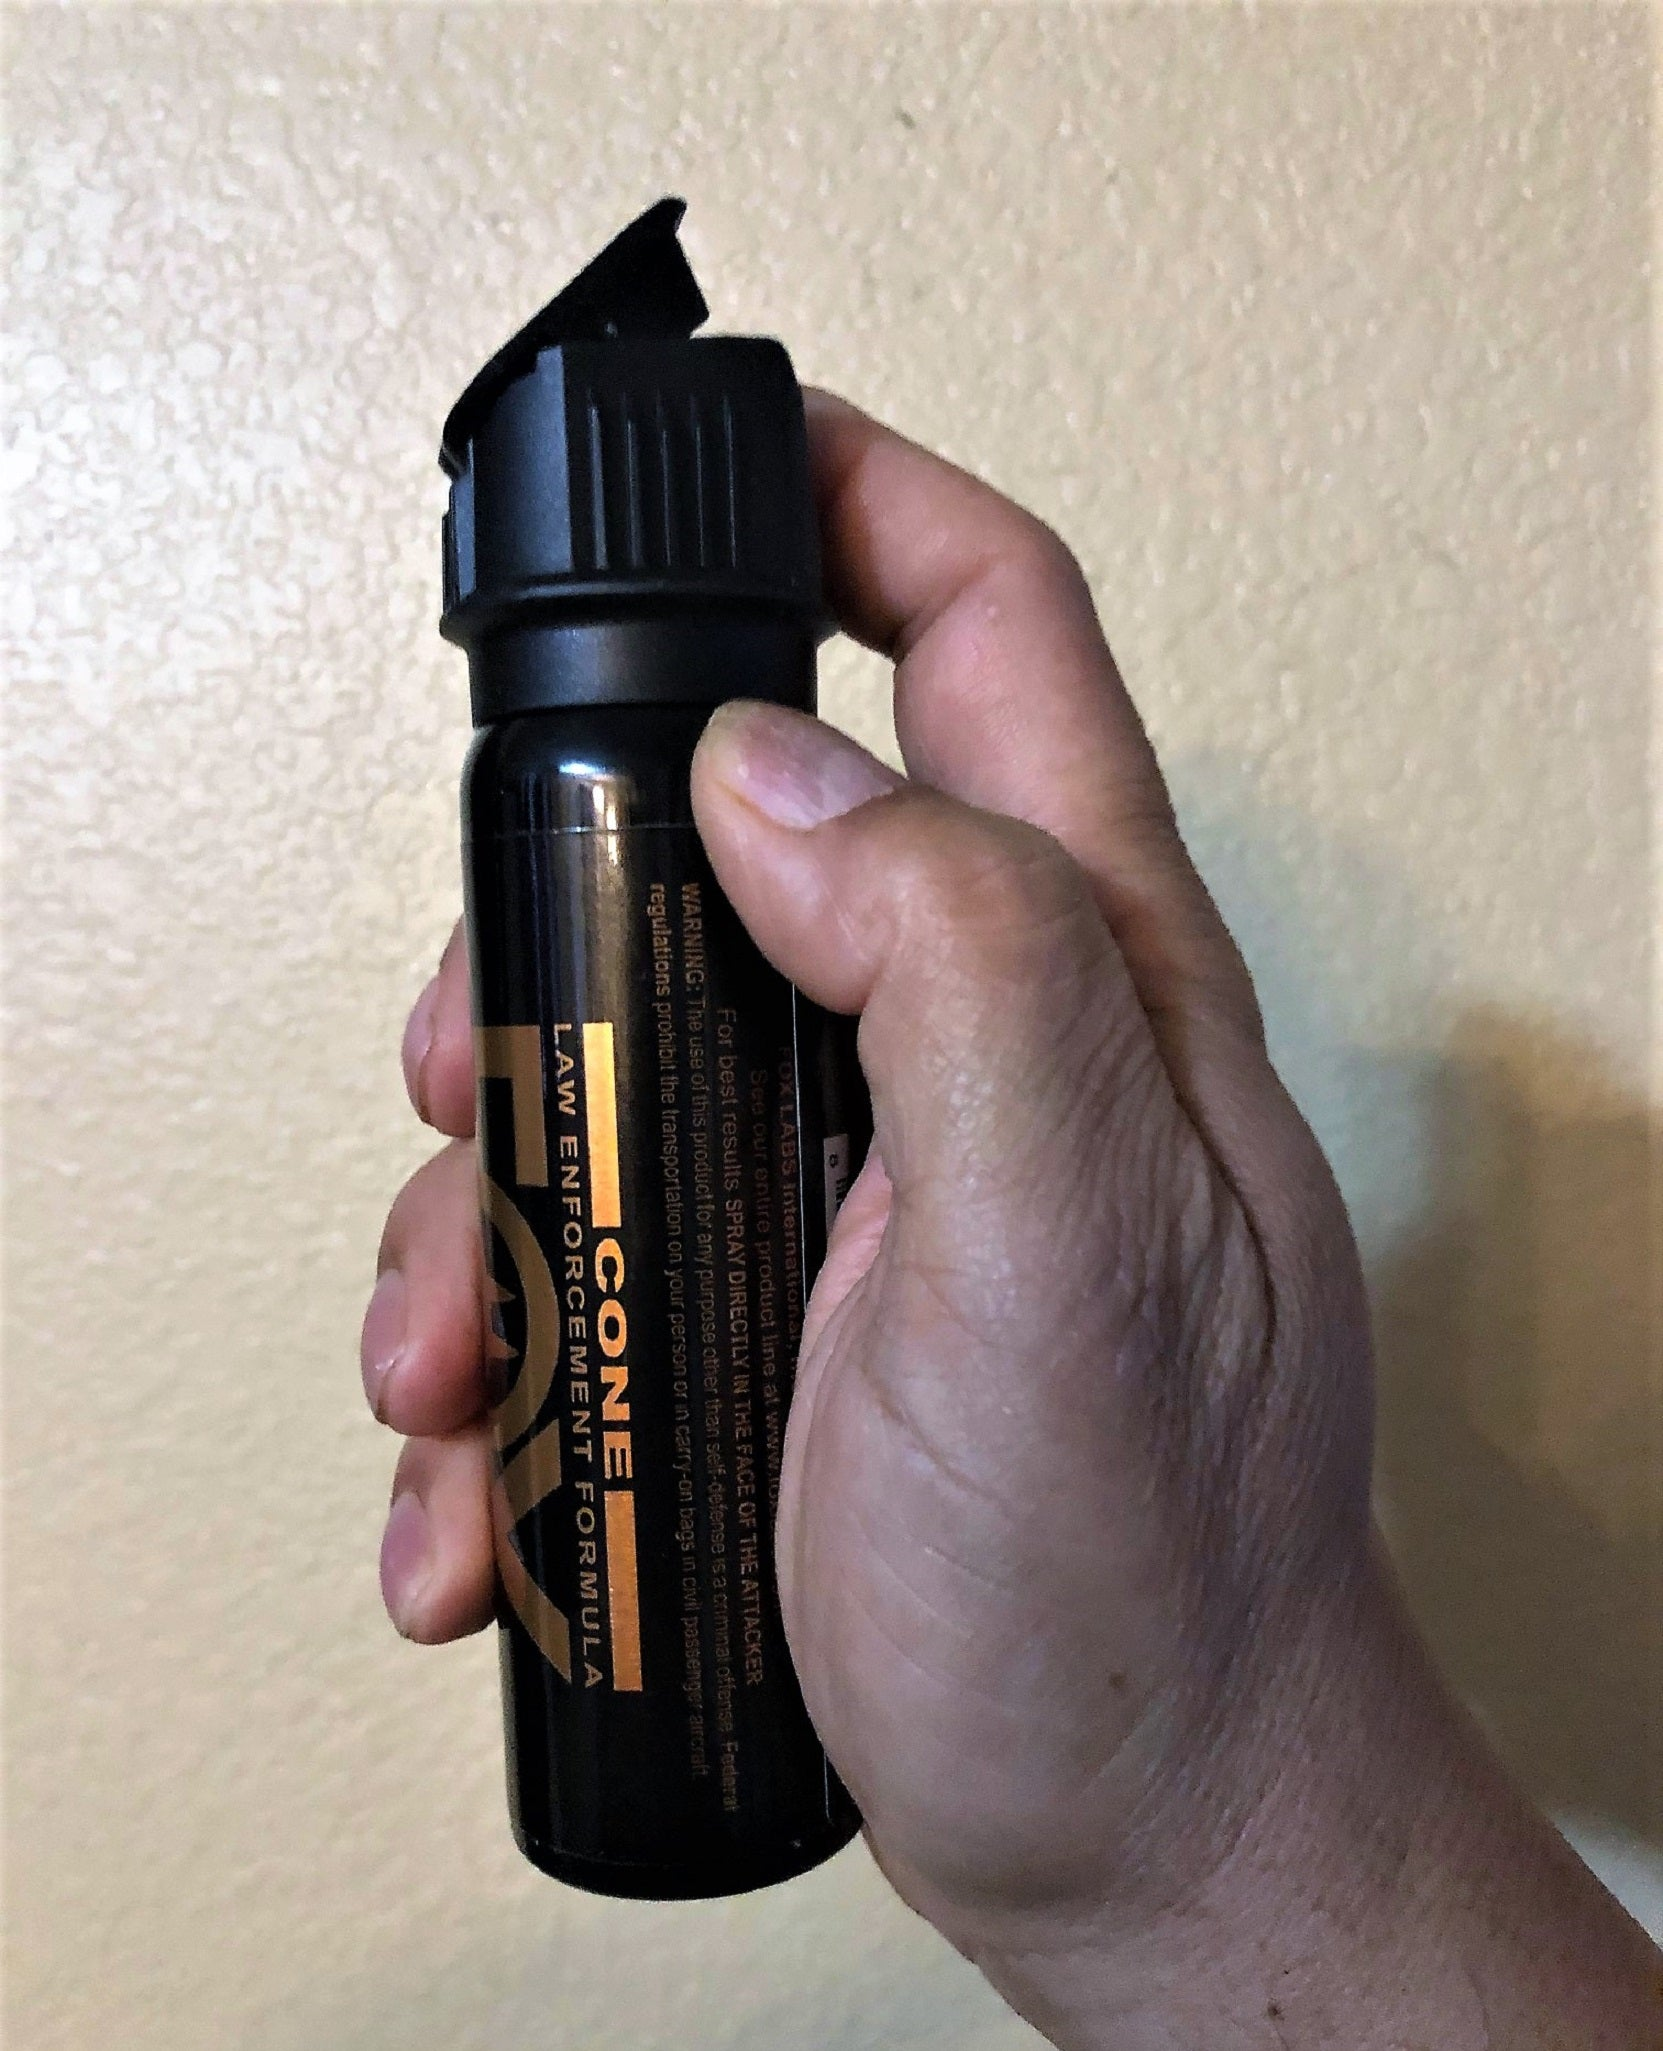 NEW FOX LABS 5.3 SQUARED Tactical HOT Police Pepper Spray FOGGER Flip-Top 3oz